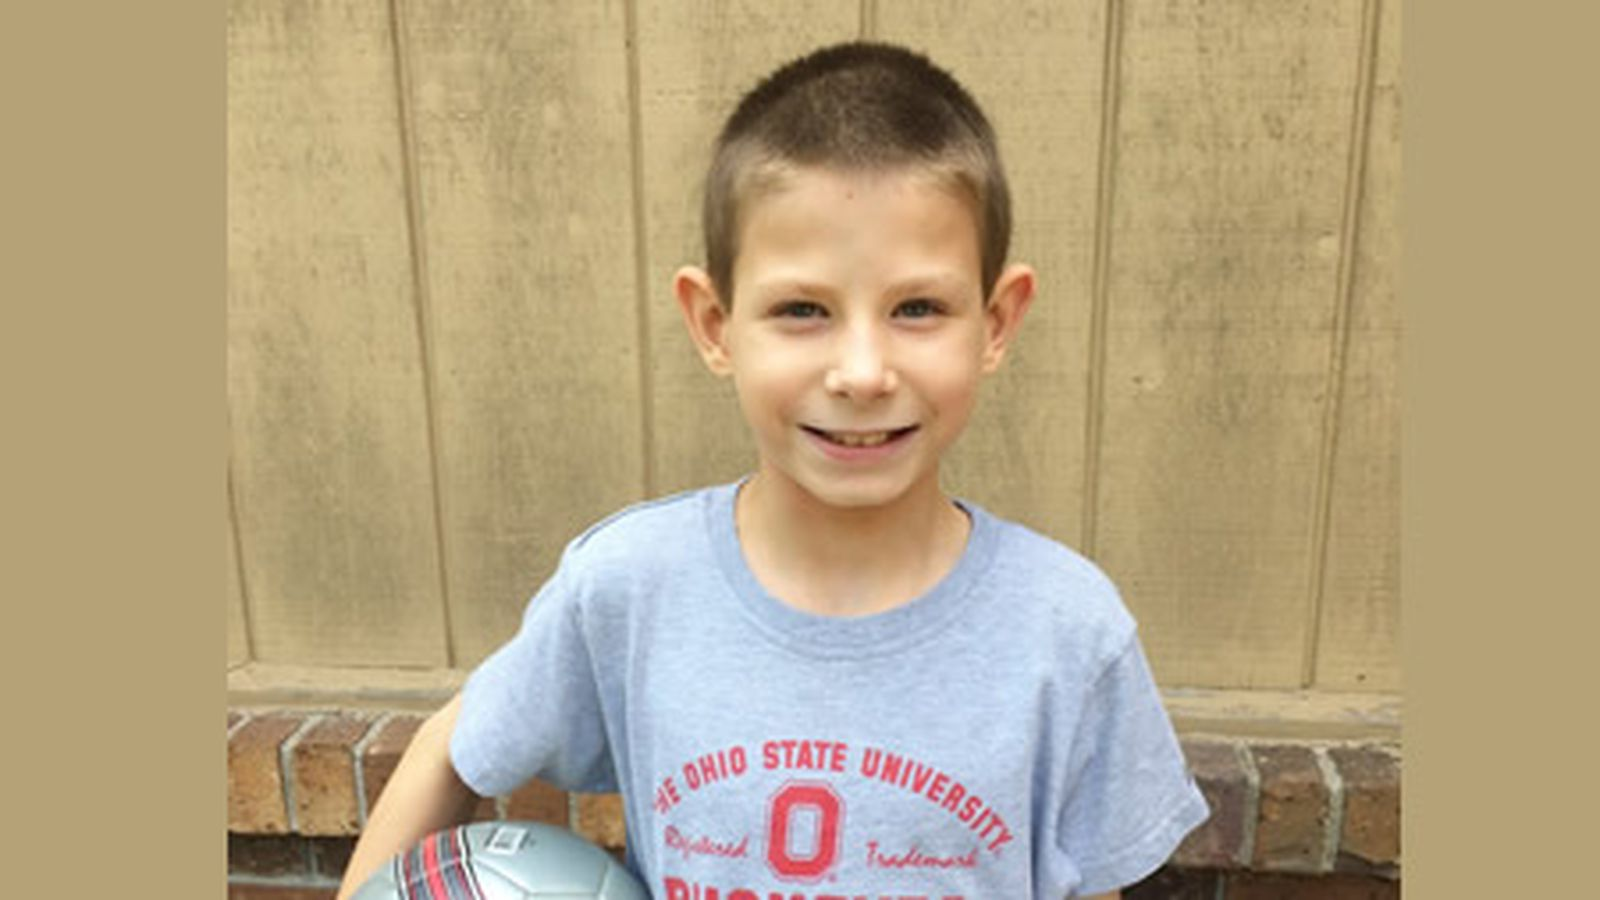 10 Year Old Ohio State Fan Worried Heart Surgery Will Make